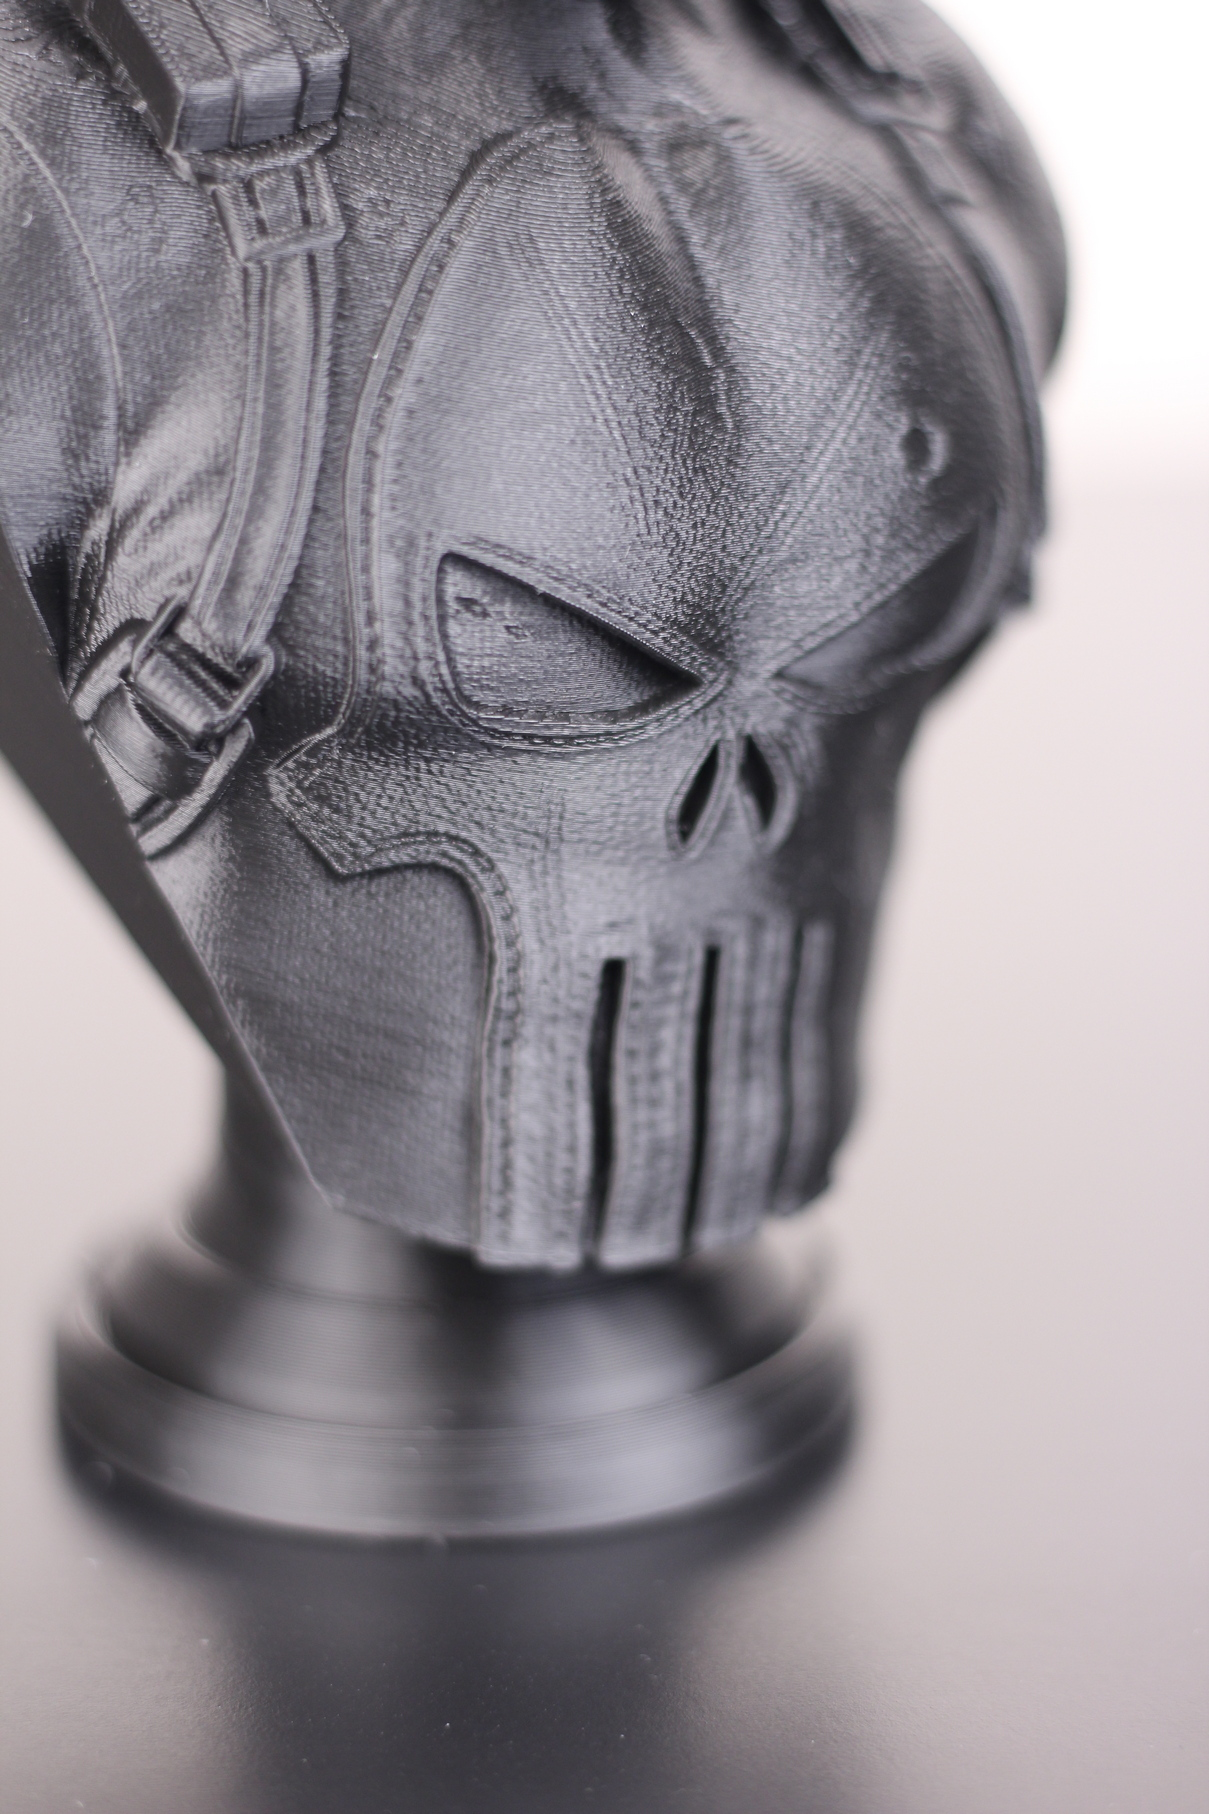 The-Punisher-on-Ender-3-Max-4